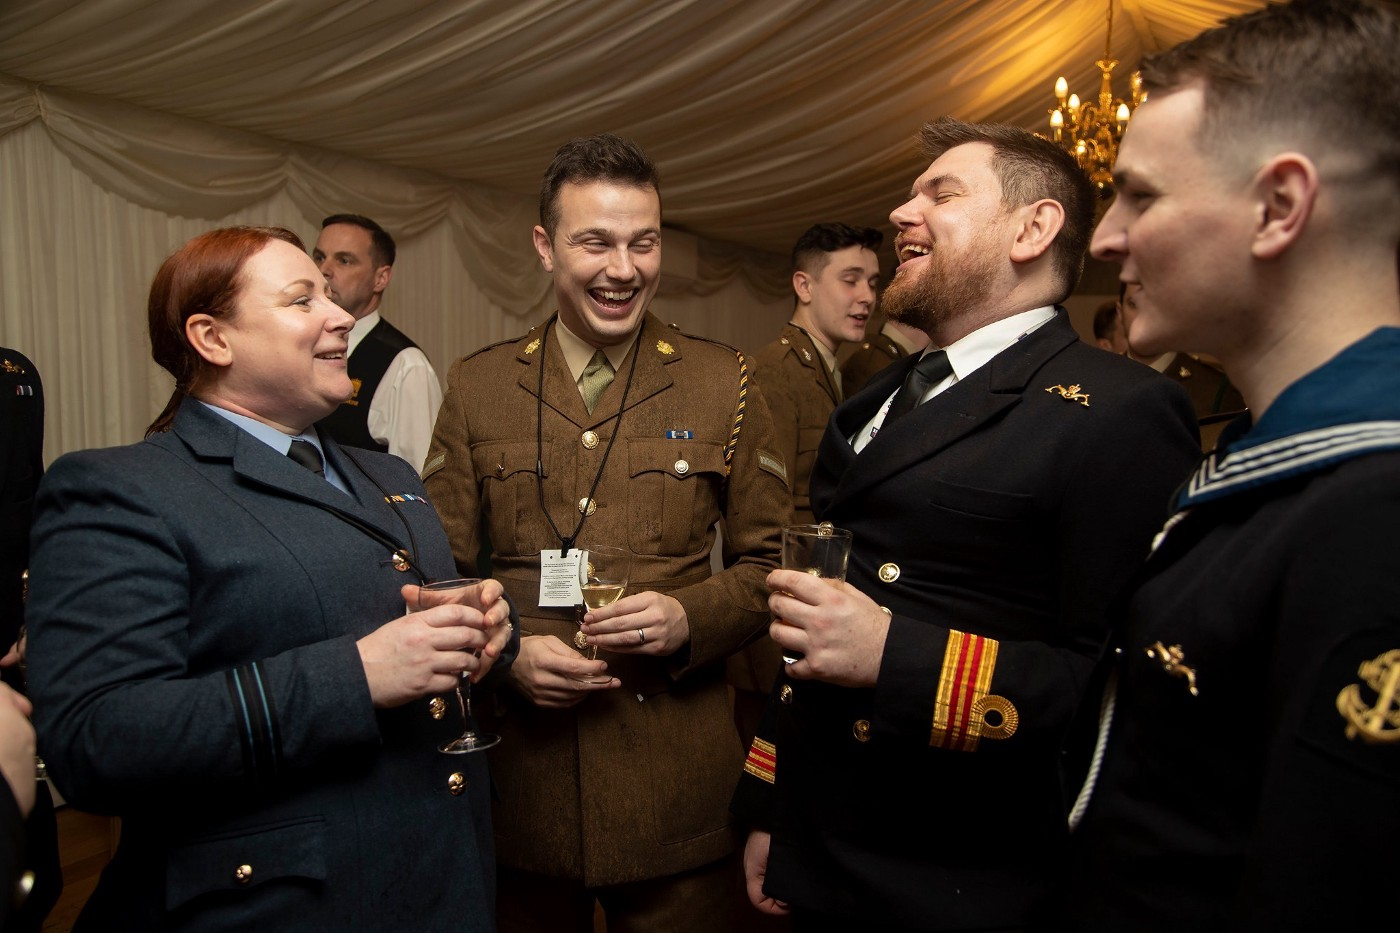 L-R: A woman from the RAF, a man from the Army, and two men from the Navy laugh in a marquee